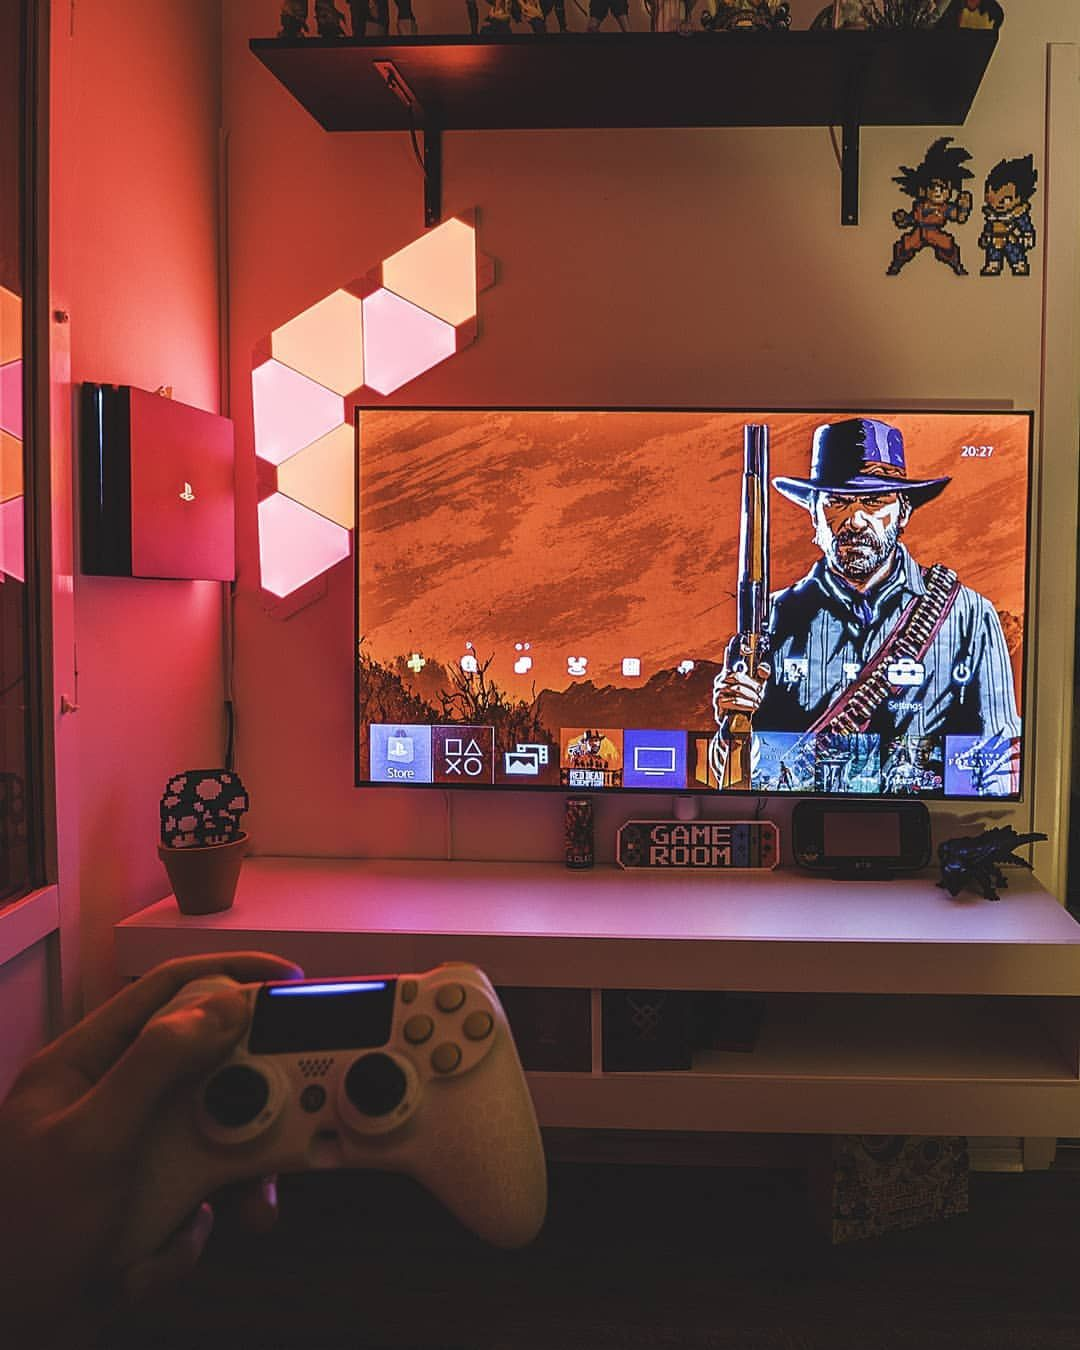 Red Dead Redemption 2 | Video Games in 2019 | Red dead